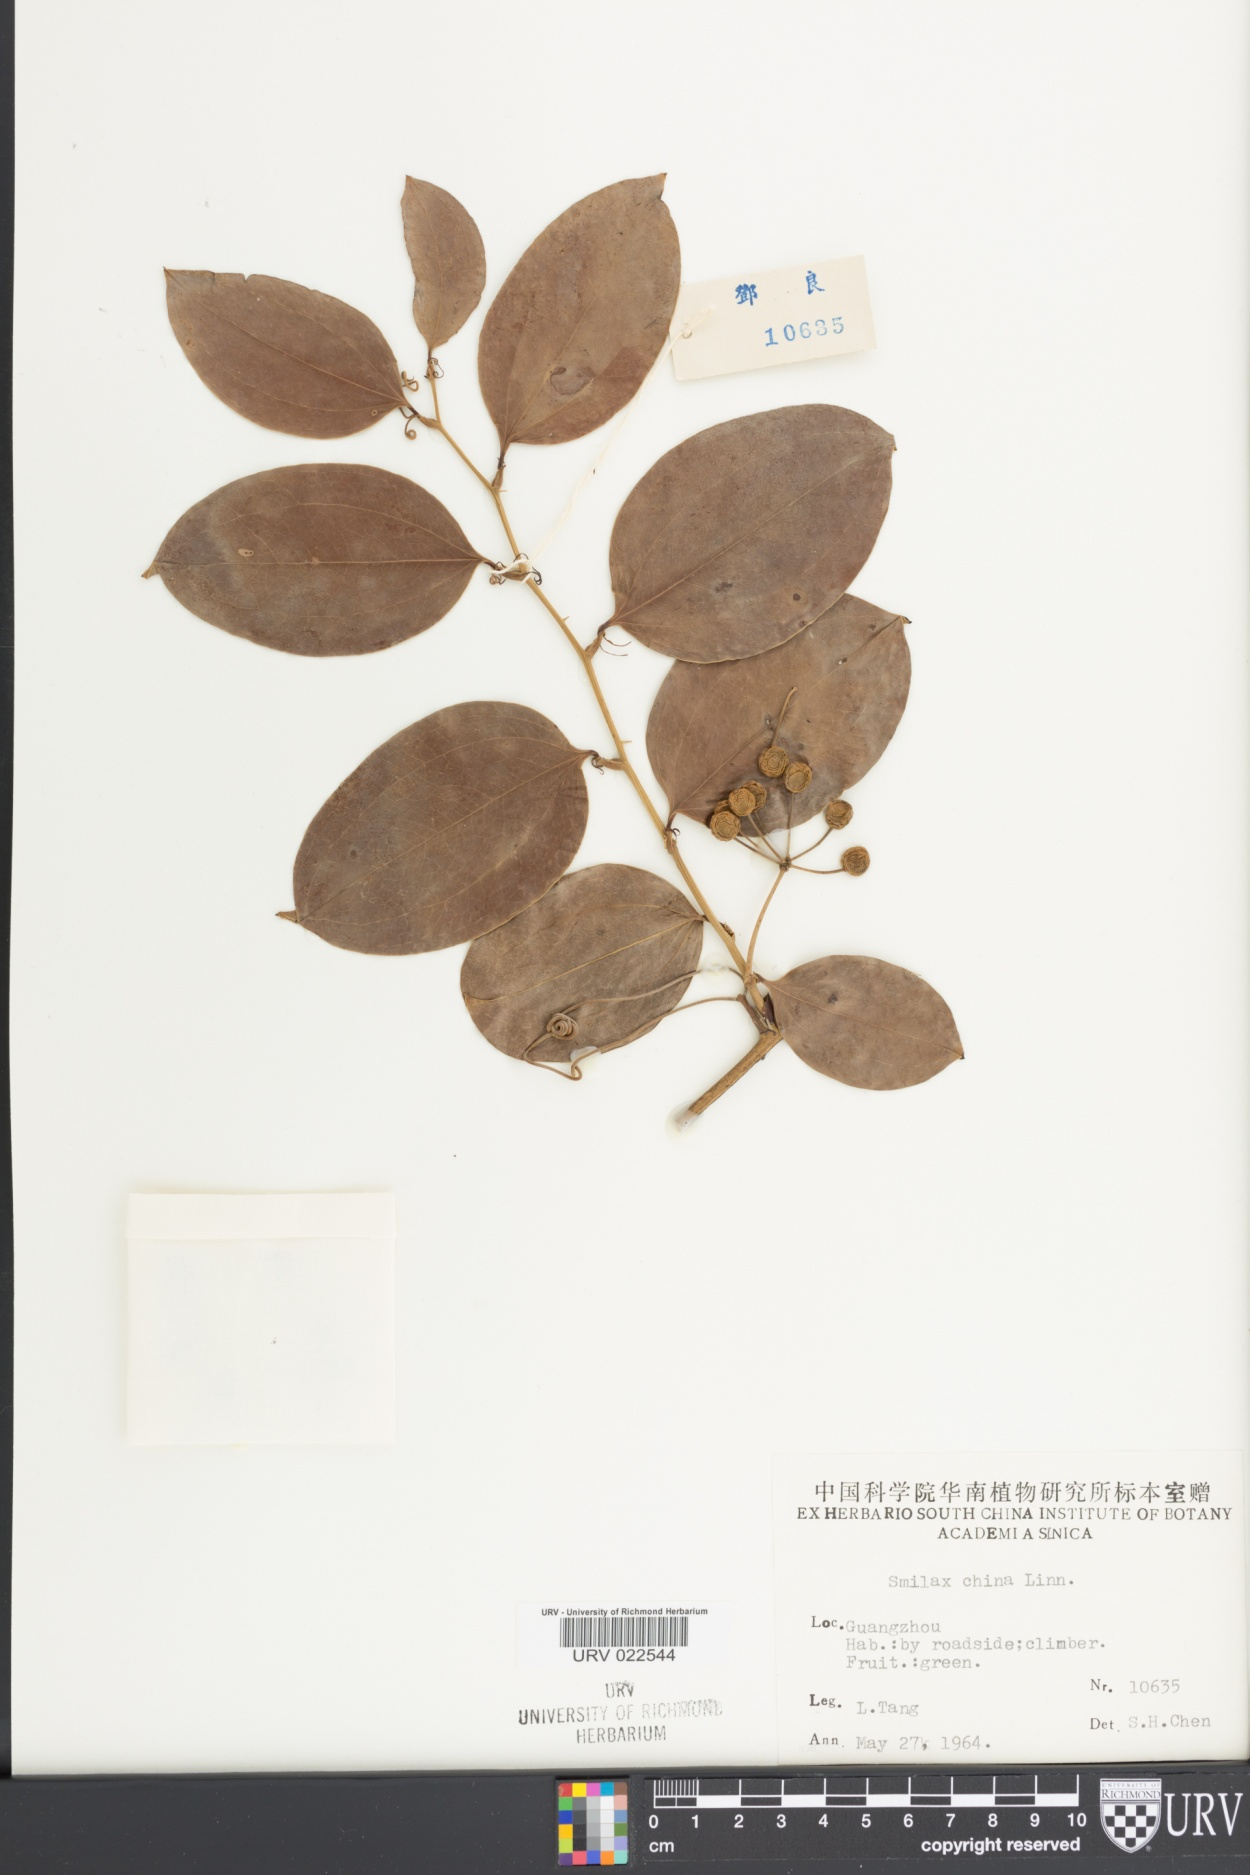 Smilax china image